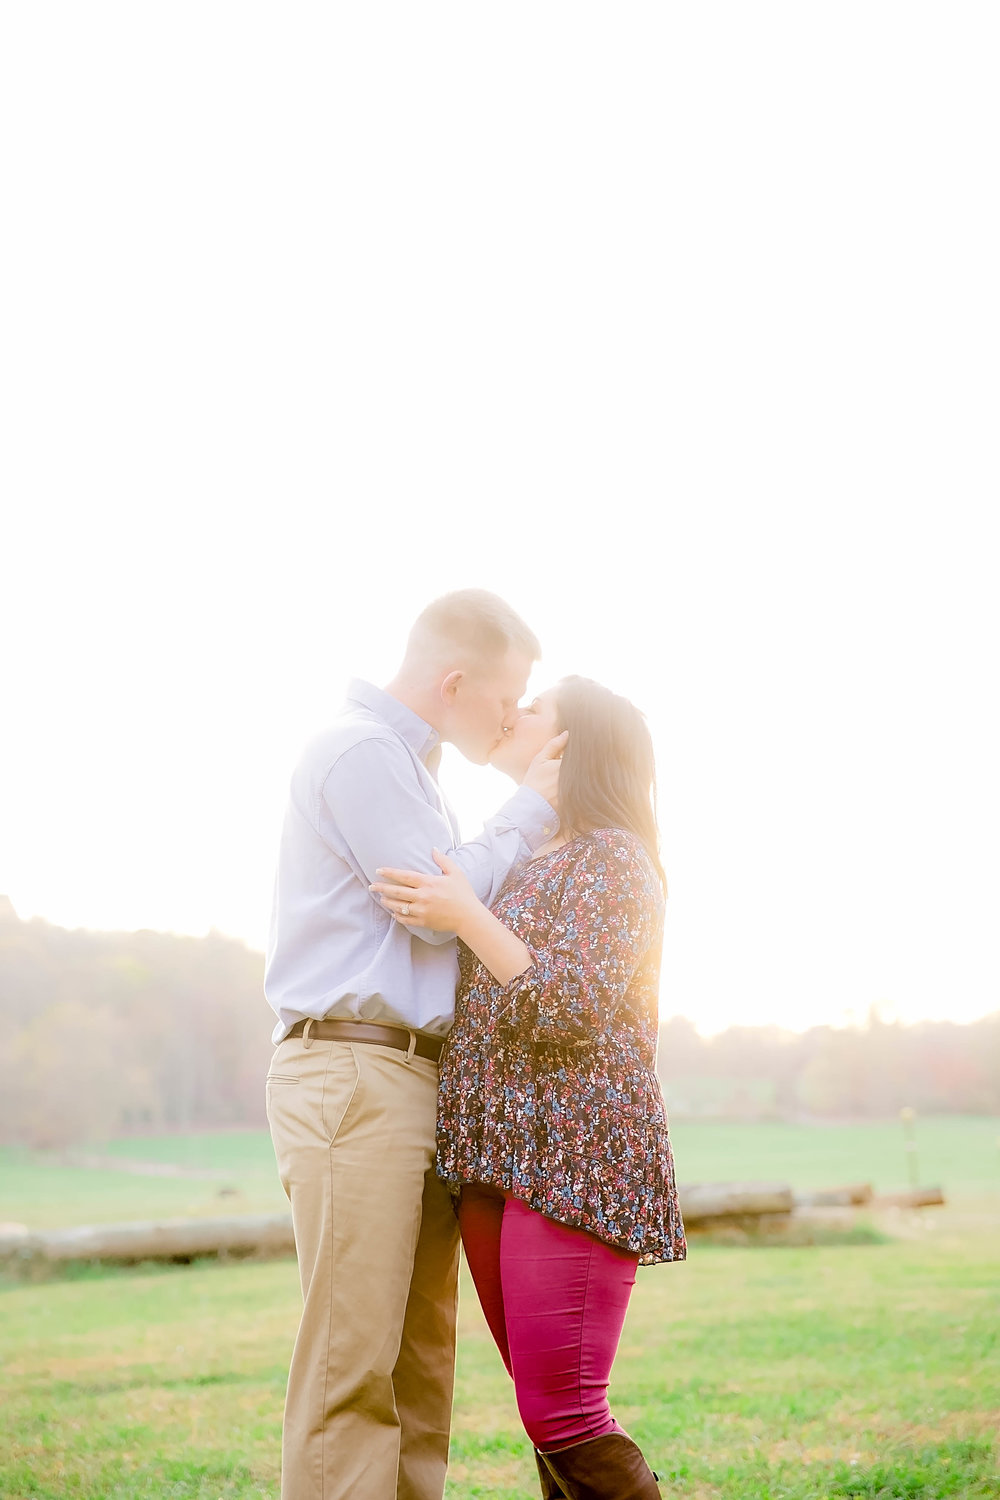 Doe River Gorge fall engagement session, East Tennessee engagement photography, Johnson City wedding photographer, East Tennessee bright and airy photography